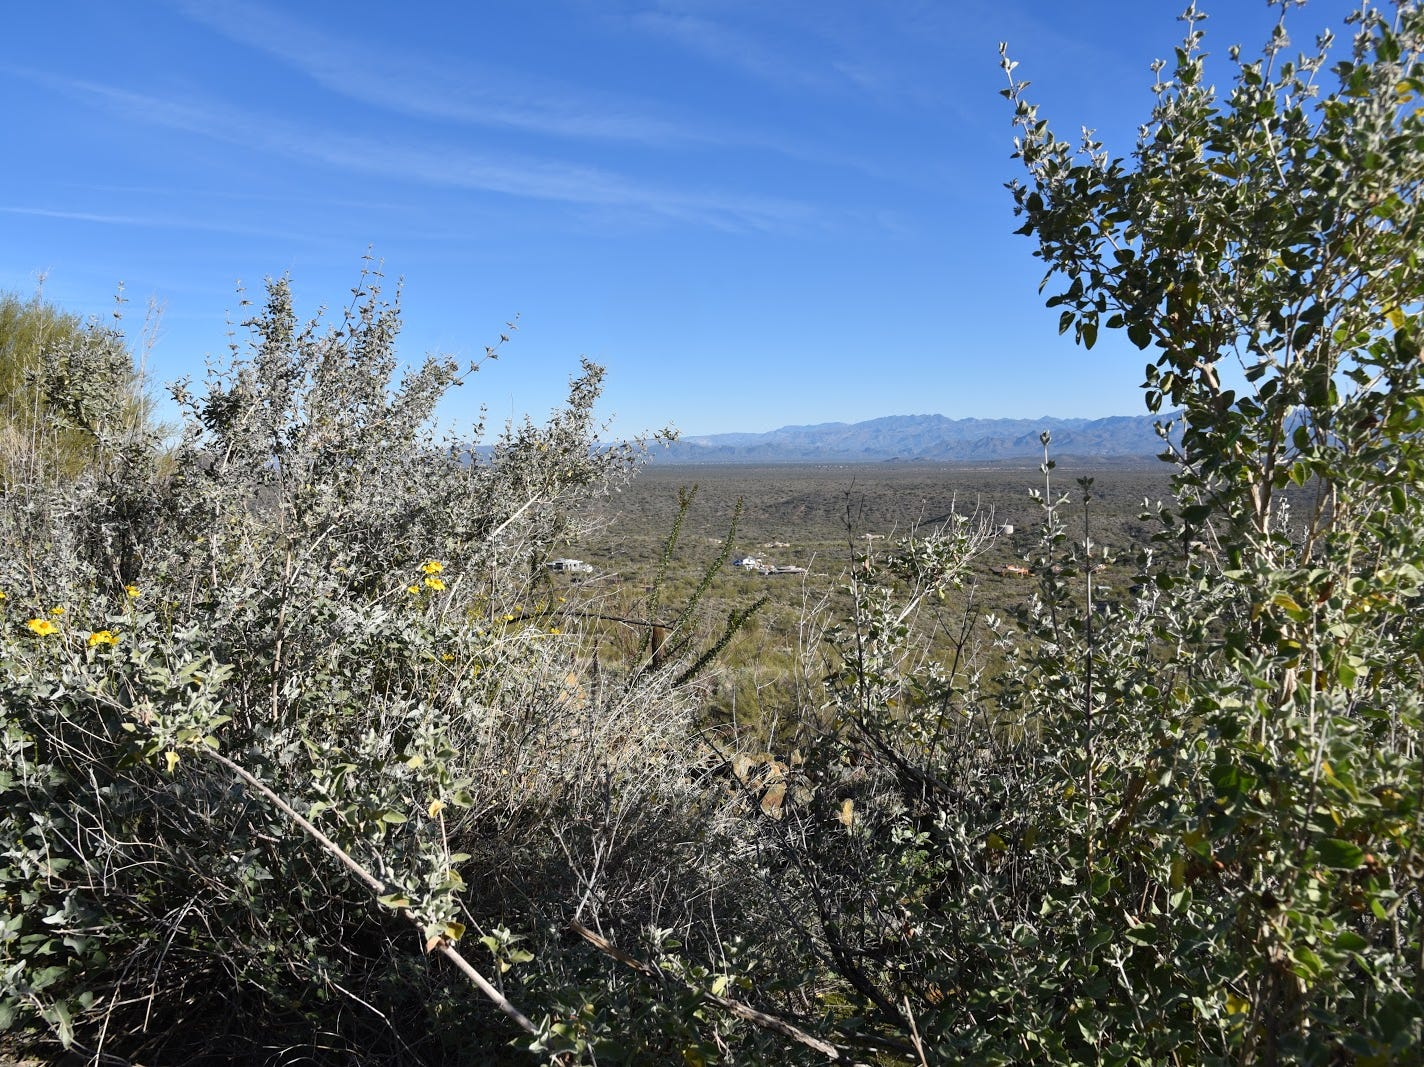 Desert lavender shrubs frame views of Tonto National Forest mountains.